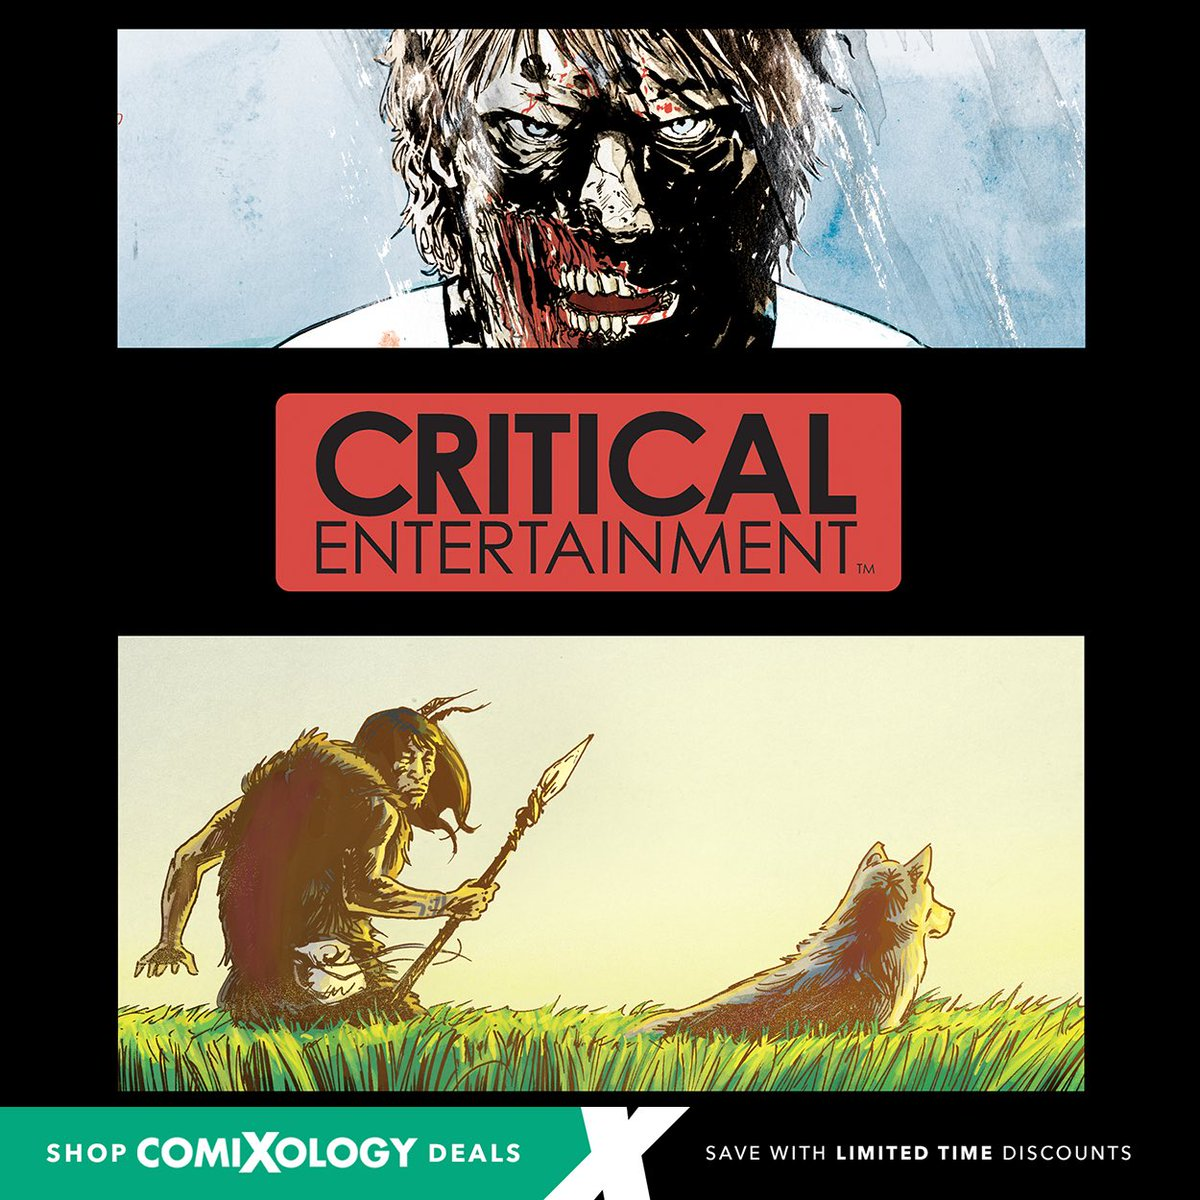 """50% Off Digital Comic Book Sale! @comixology is having their Small Press Mega Sale from August 7th to September 8! Read @CriticalEntLA #comicbooks by going to http://www.comixology.com and searching """"Critical Entertainment"""" or any of our titles.   #comicbook #sale #digitalcomics pic.twitter.com/sWV3N7pbsl"""